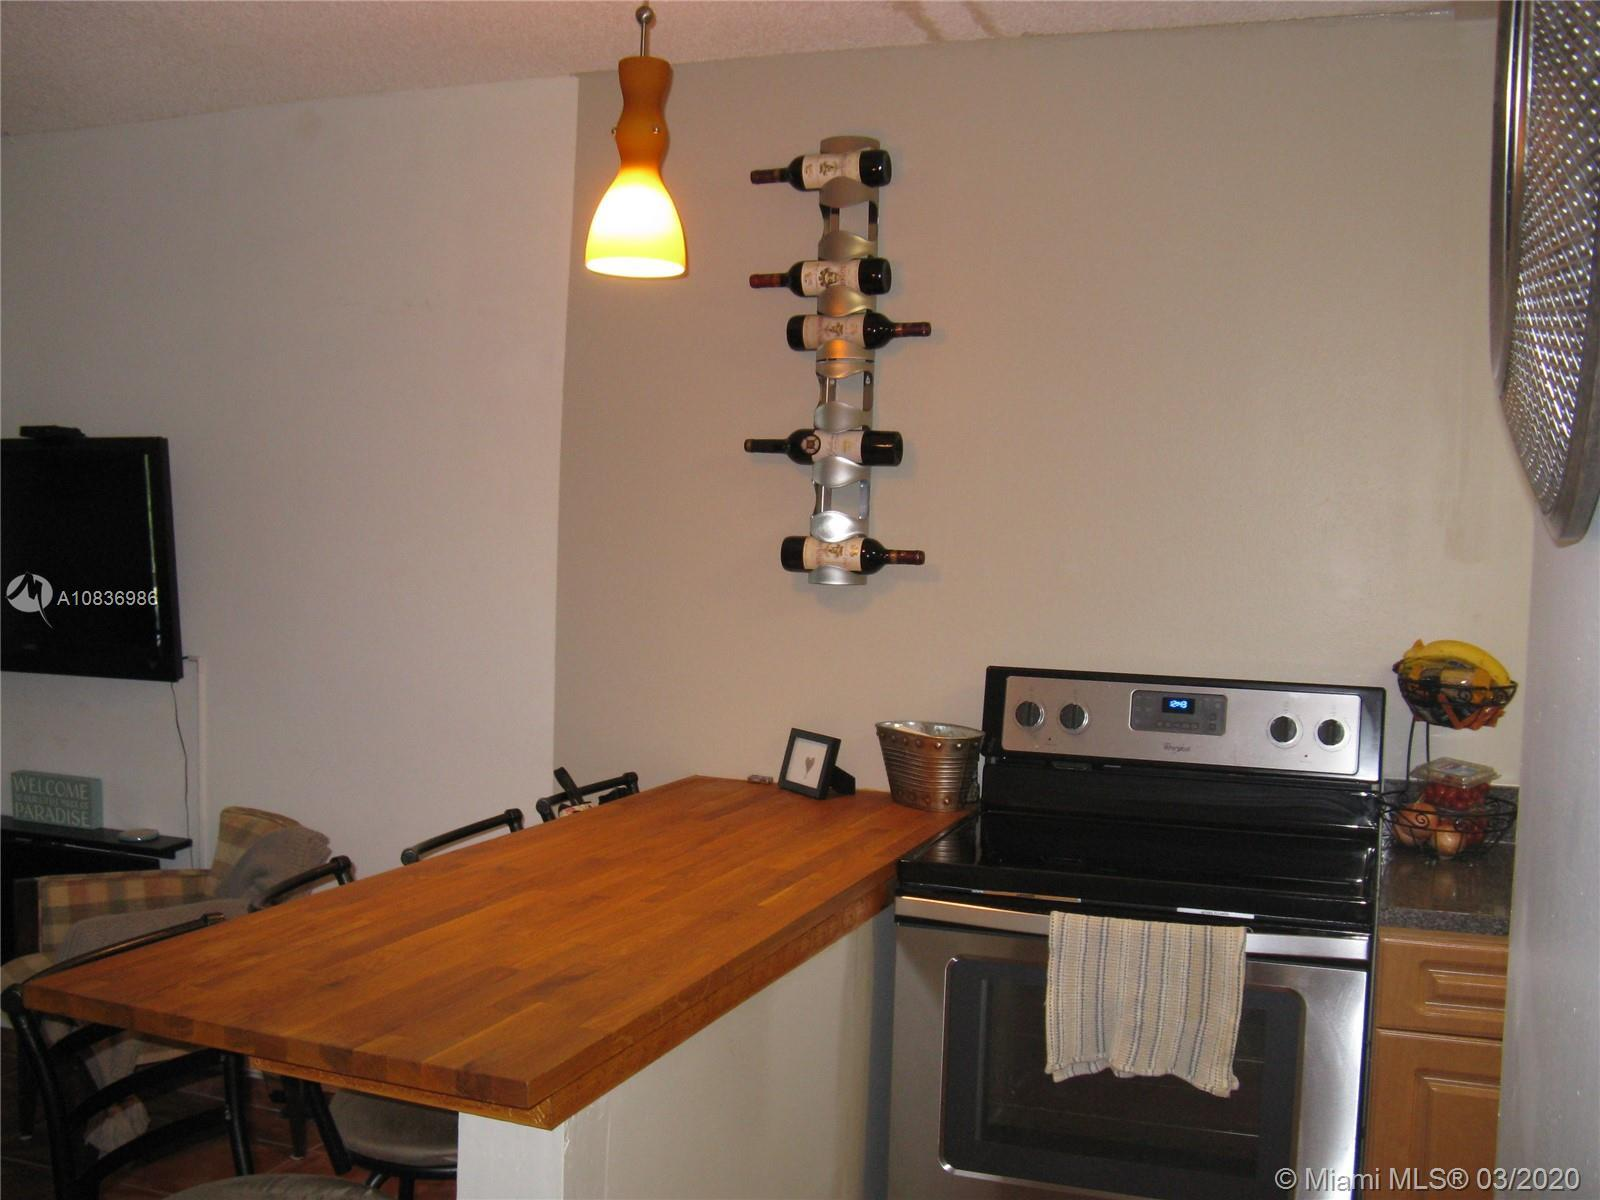 VERY VERY NICE ONE BEDROOM APT IN AVILA NORTH, OPEN KITCHEN THAT IS VERY USEFUL AND INVITING FOR ANY